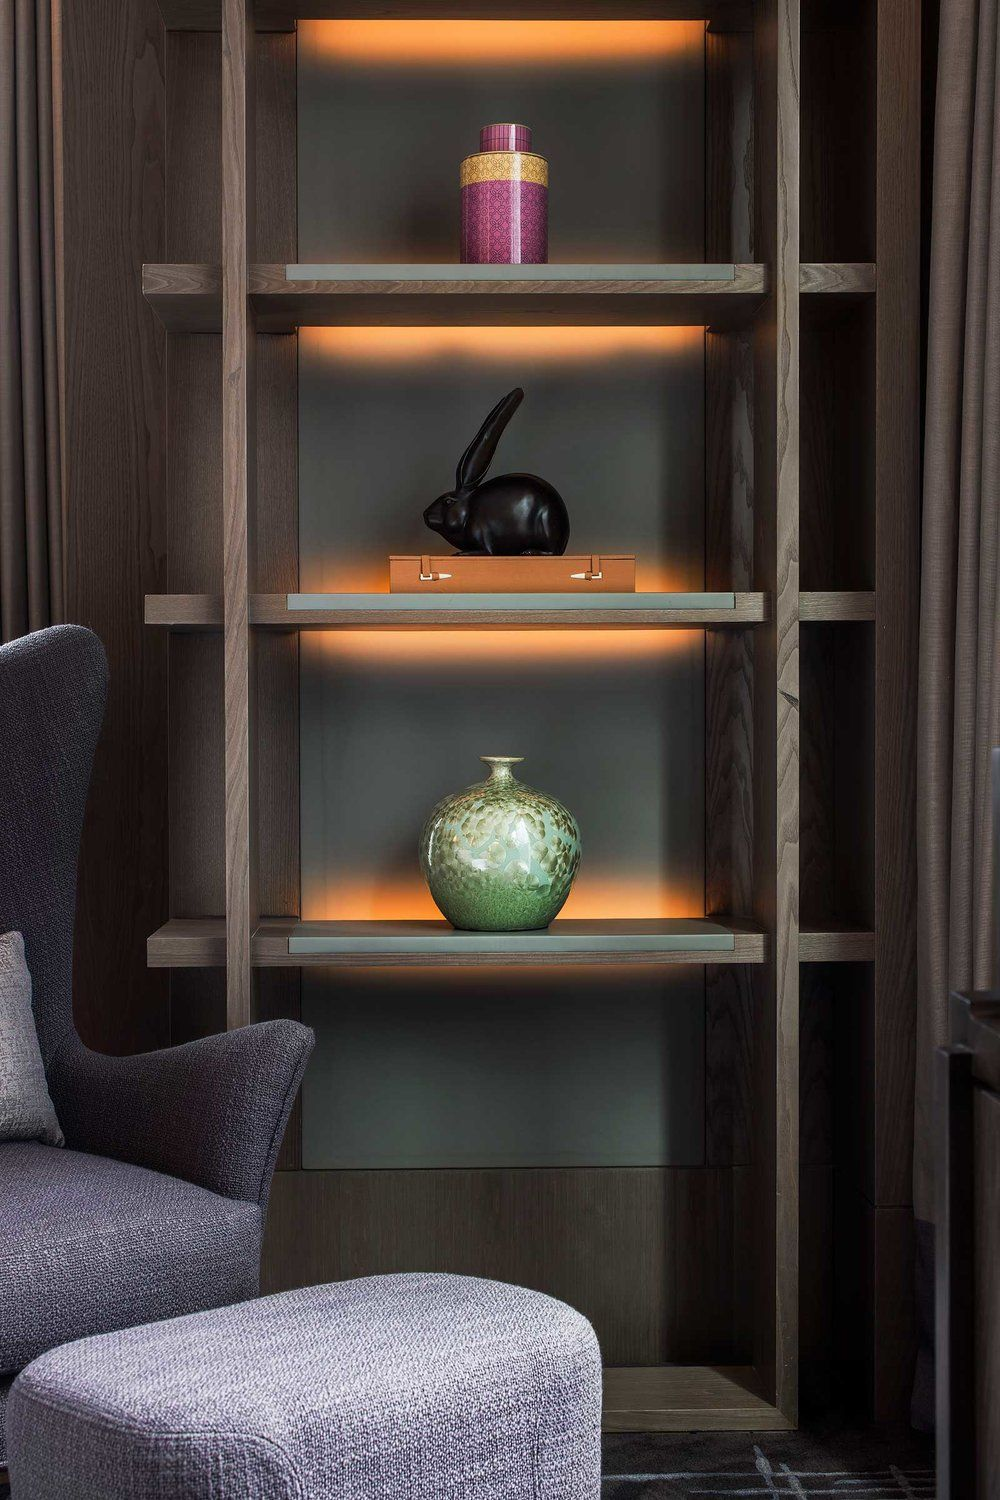 Hotel Room Accessories: Tradition And Modernity Meet At The St. Regis